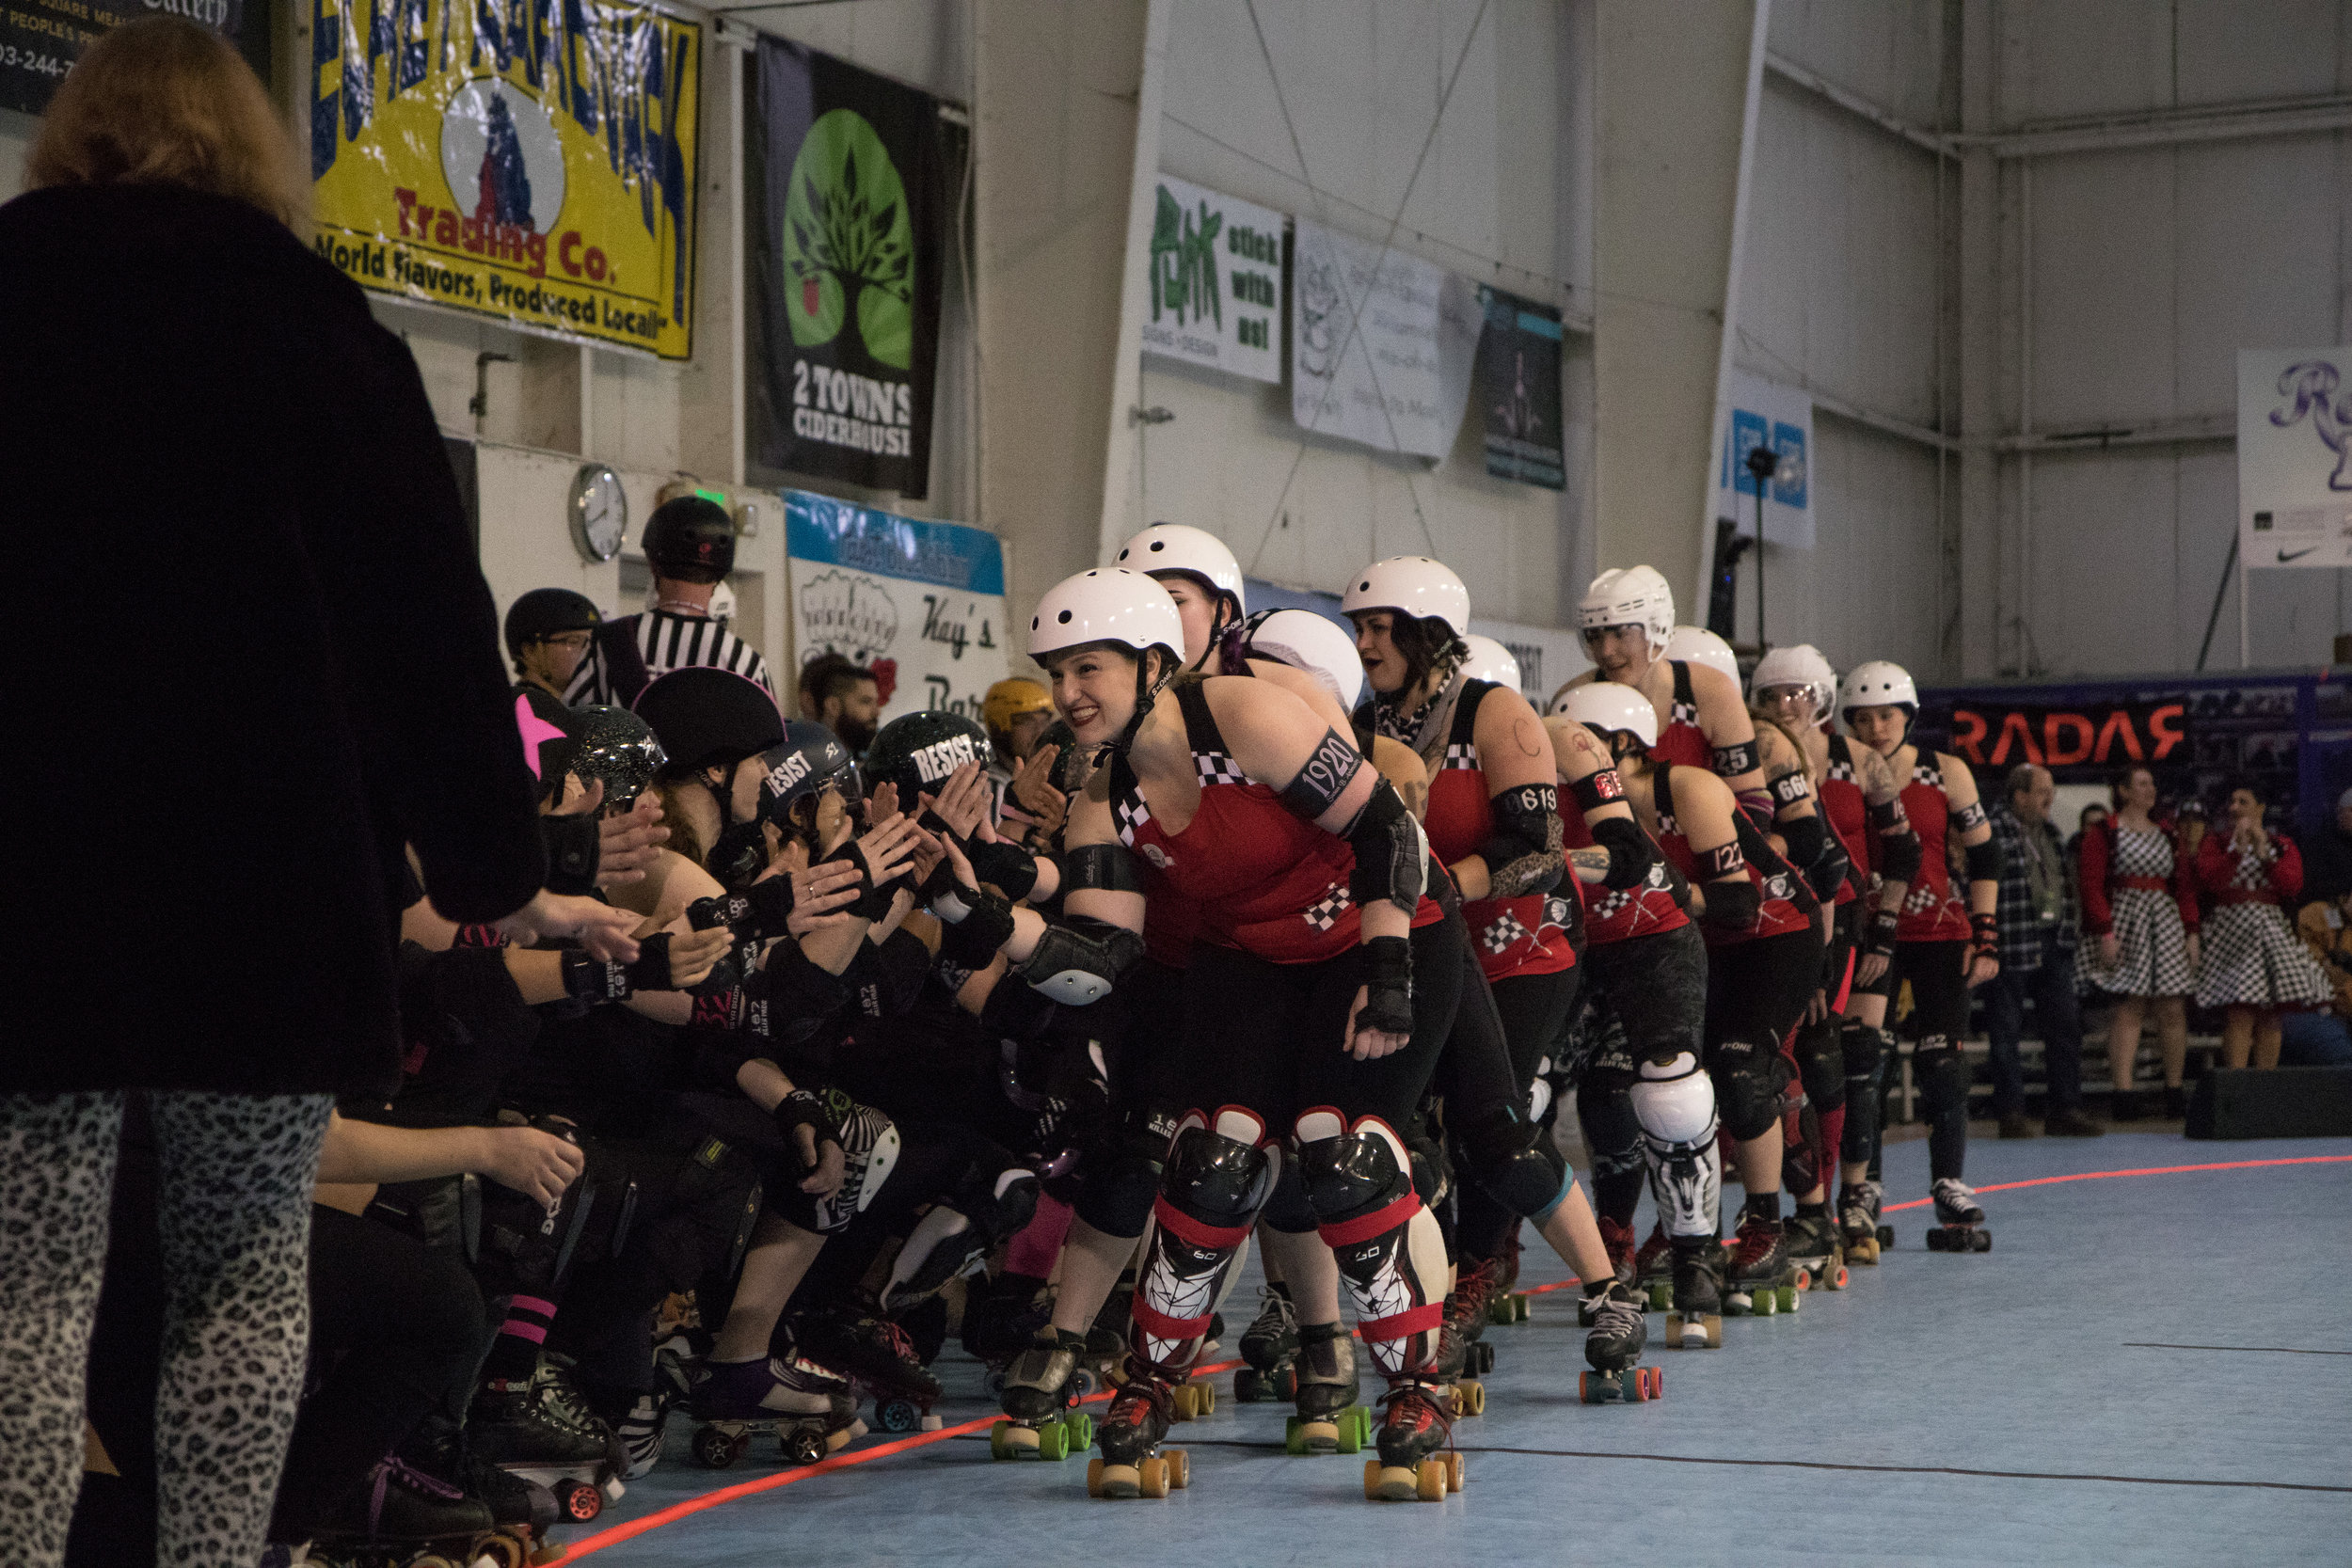 Susan B. Animosity (front) and the Betties shake hands with opponents Guns N Roses. Though they are intense rivals on the track, many have close friendships with players from teams across the league. Break Neck Betties hold the league record for the most championship wins in Rose City Rollers history.